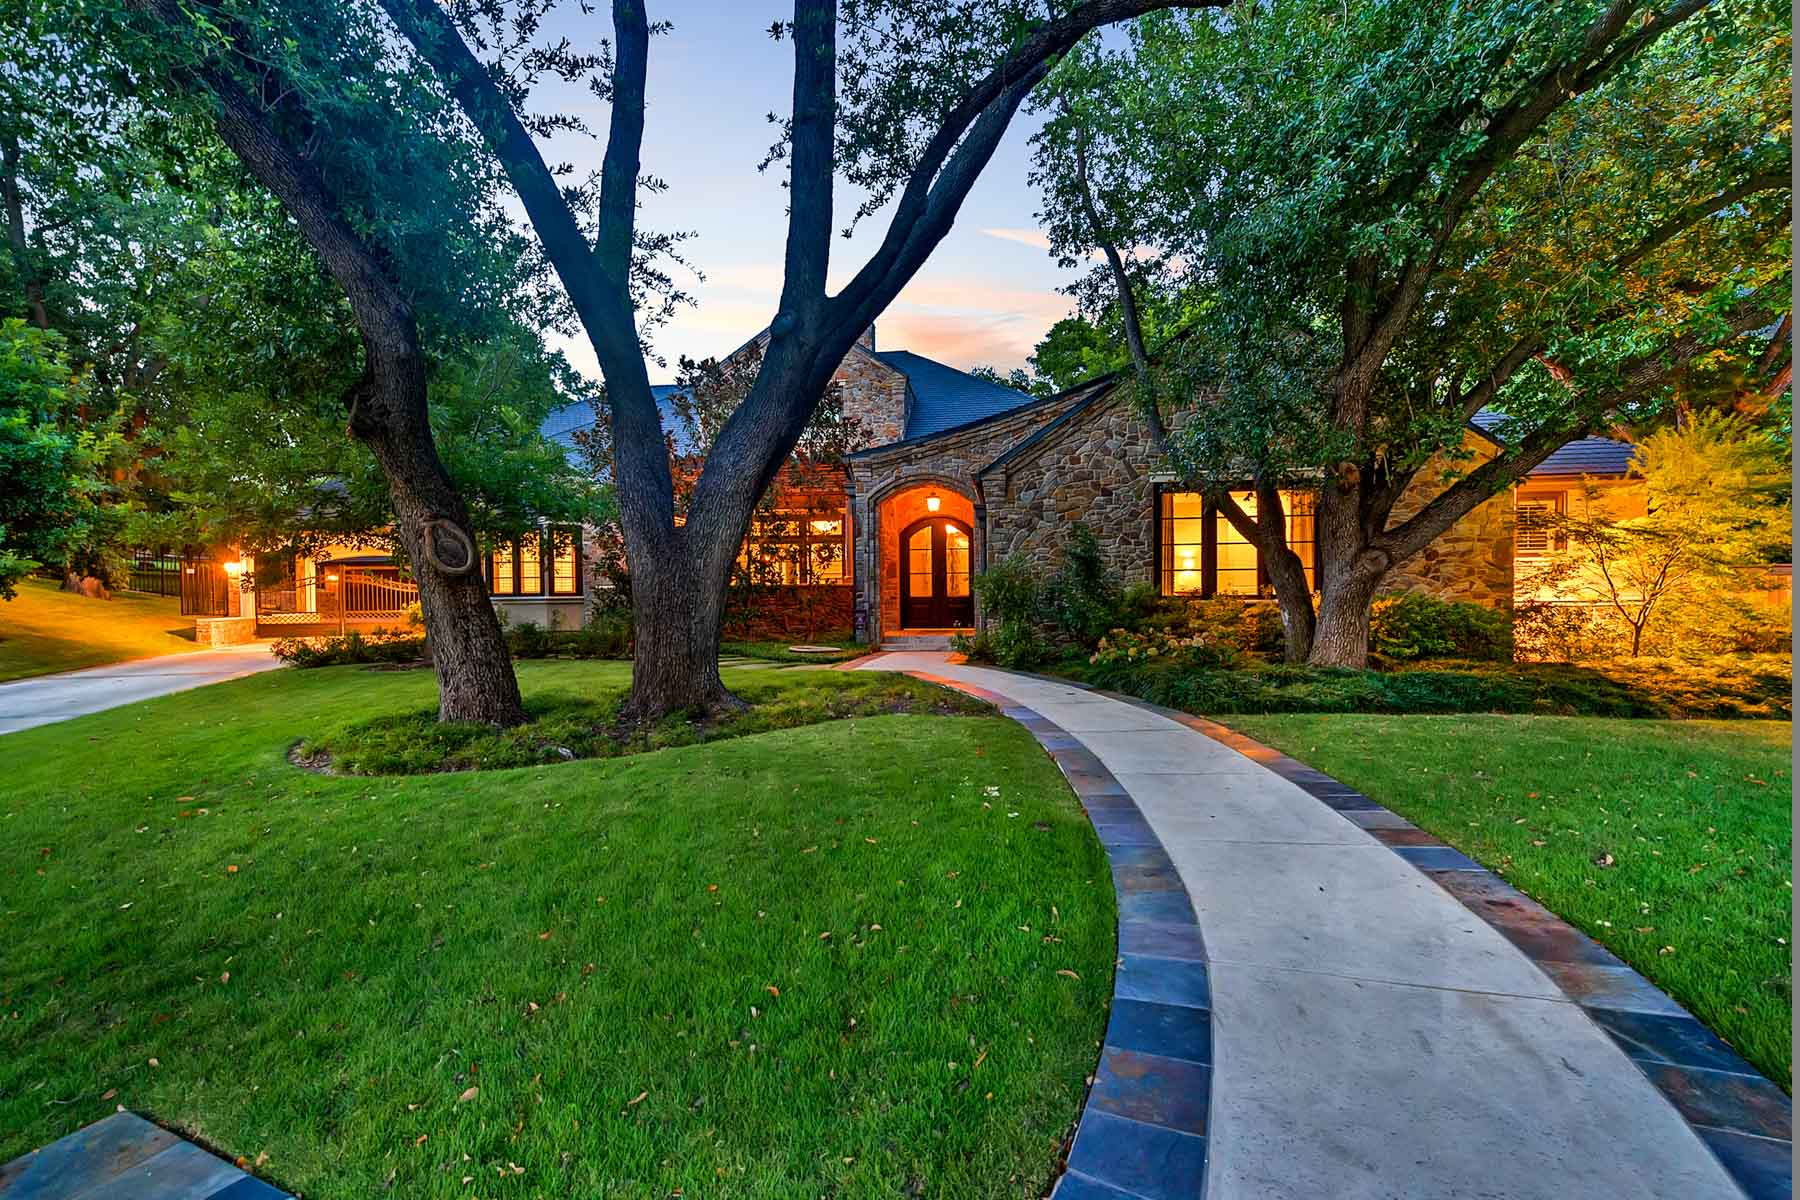 Maison unifamiliale pour l Vente à Ridgmar Traditional 1701 Dakar Rd E Fort Worth, Texas, 76116 États-Unis